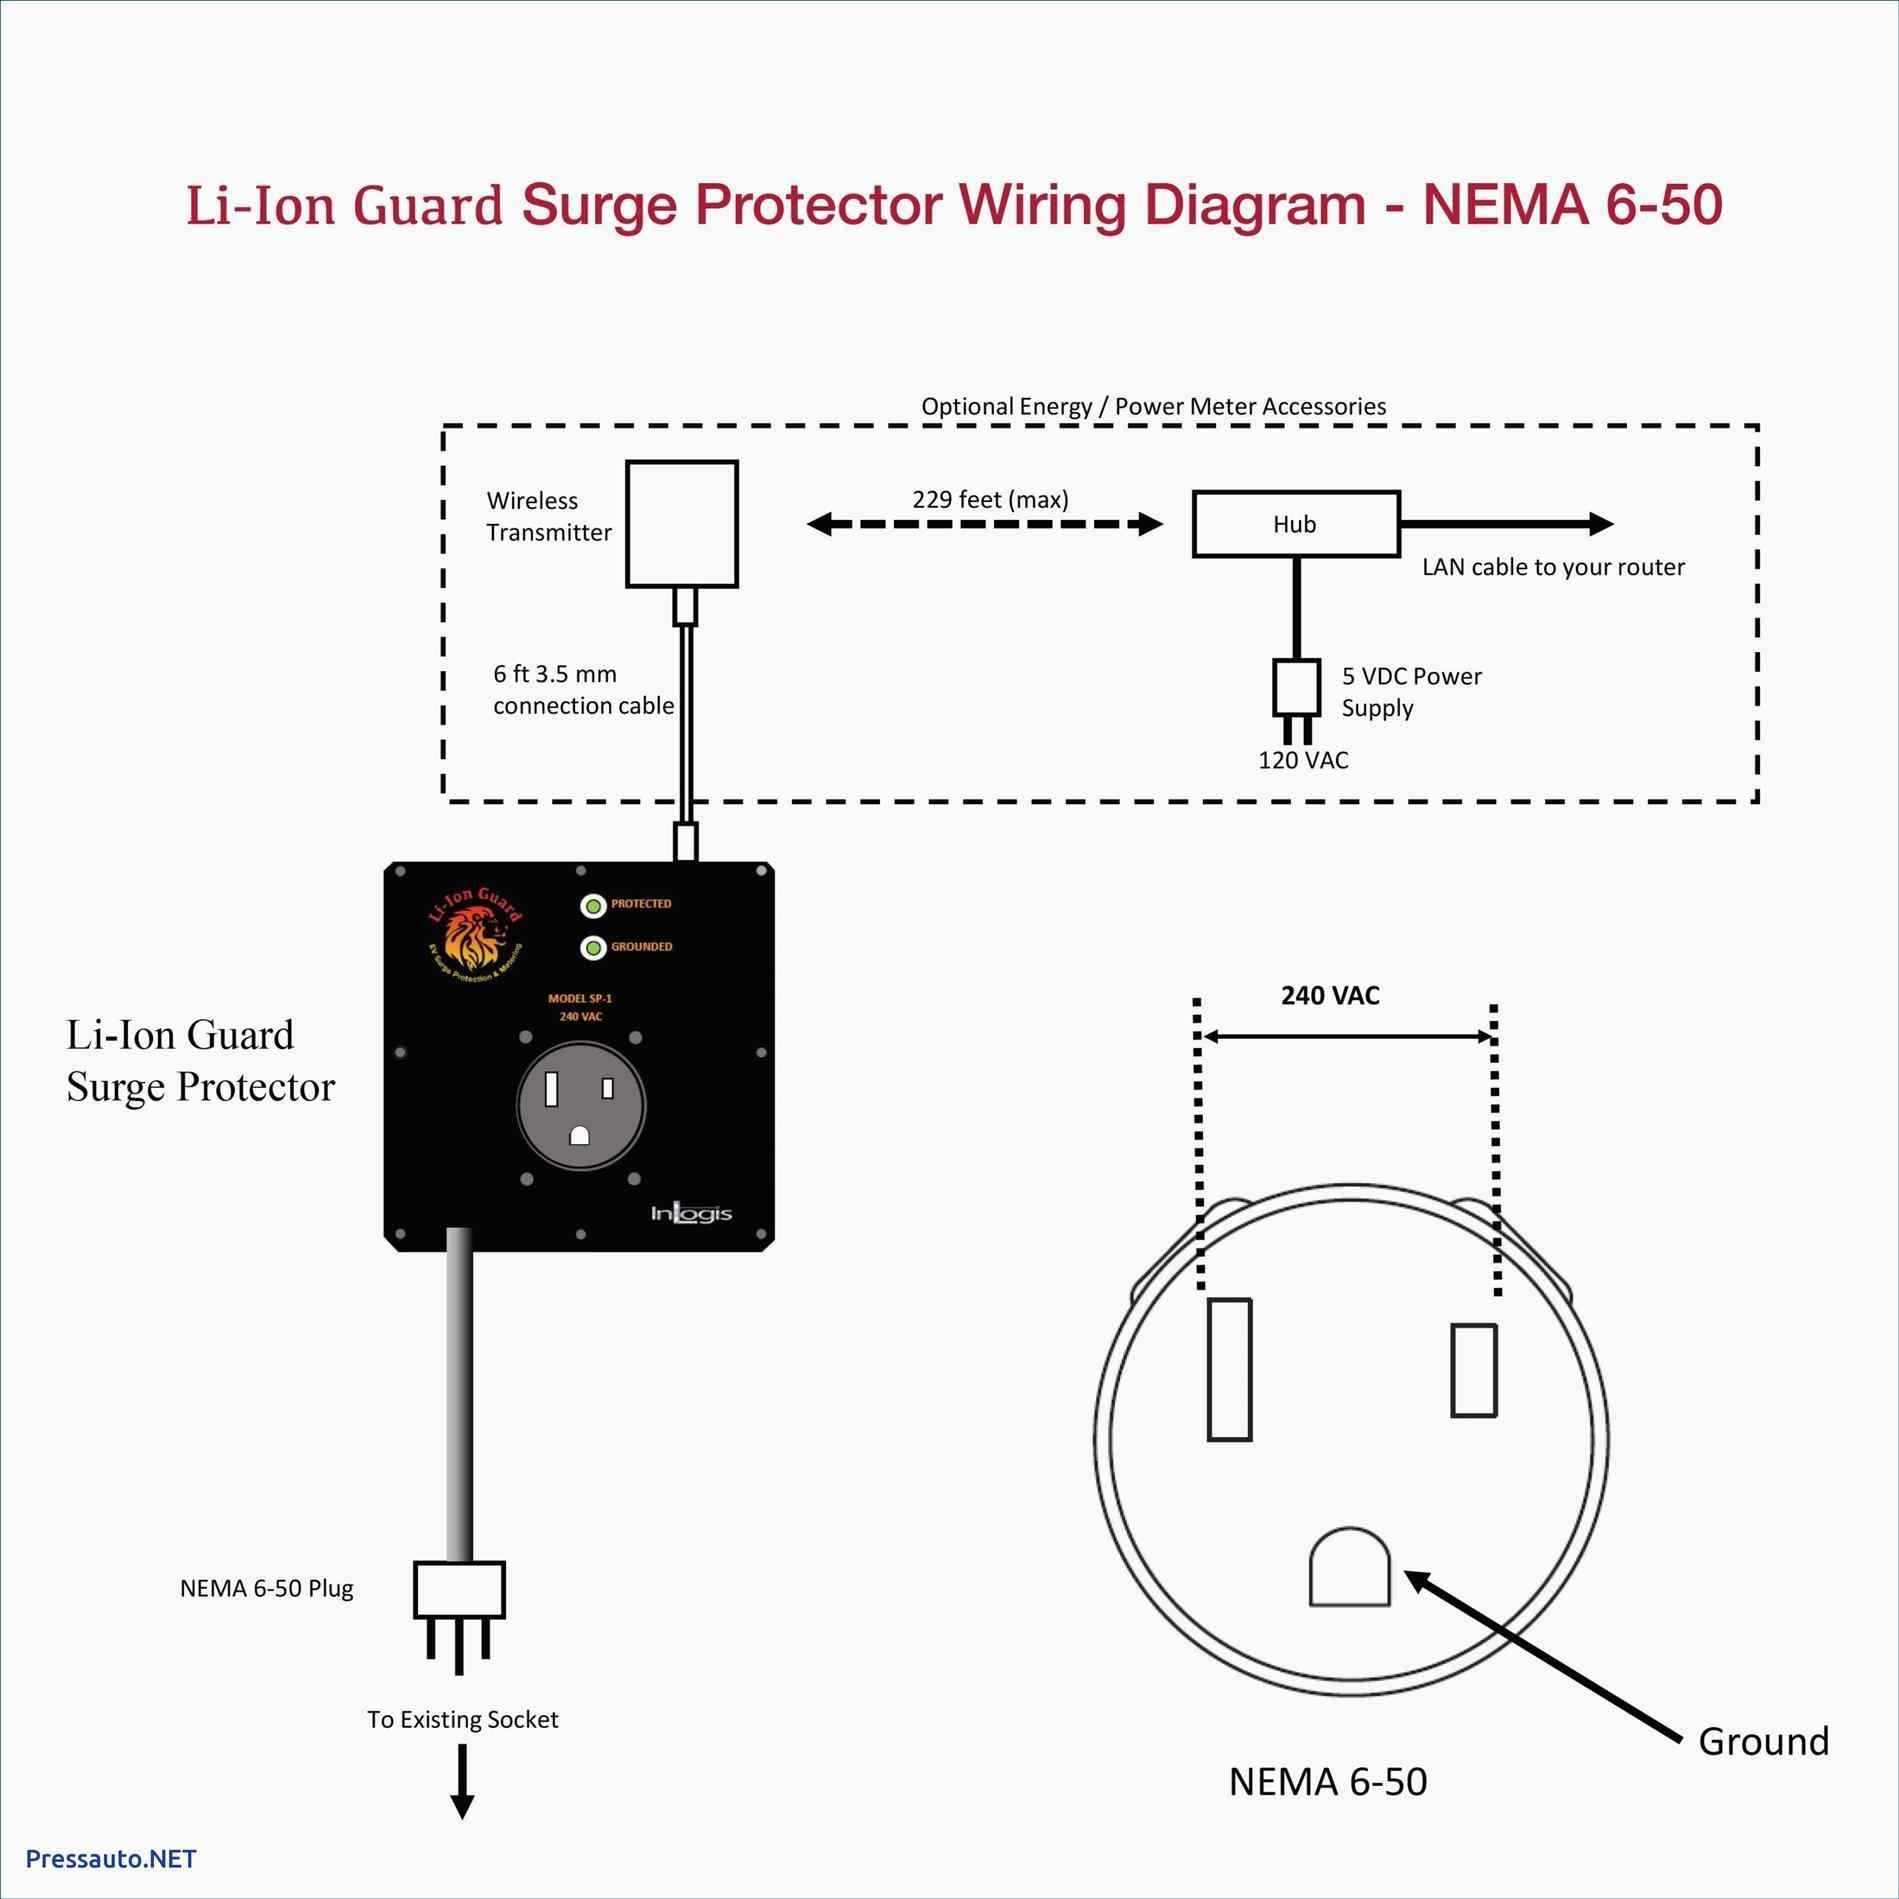 L14 20R Plug Wireing Diagram - Data Wiring Diagram Site - L14 30 Wiring Diagram